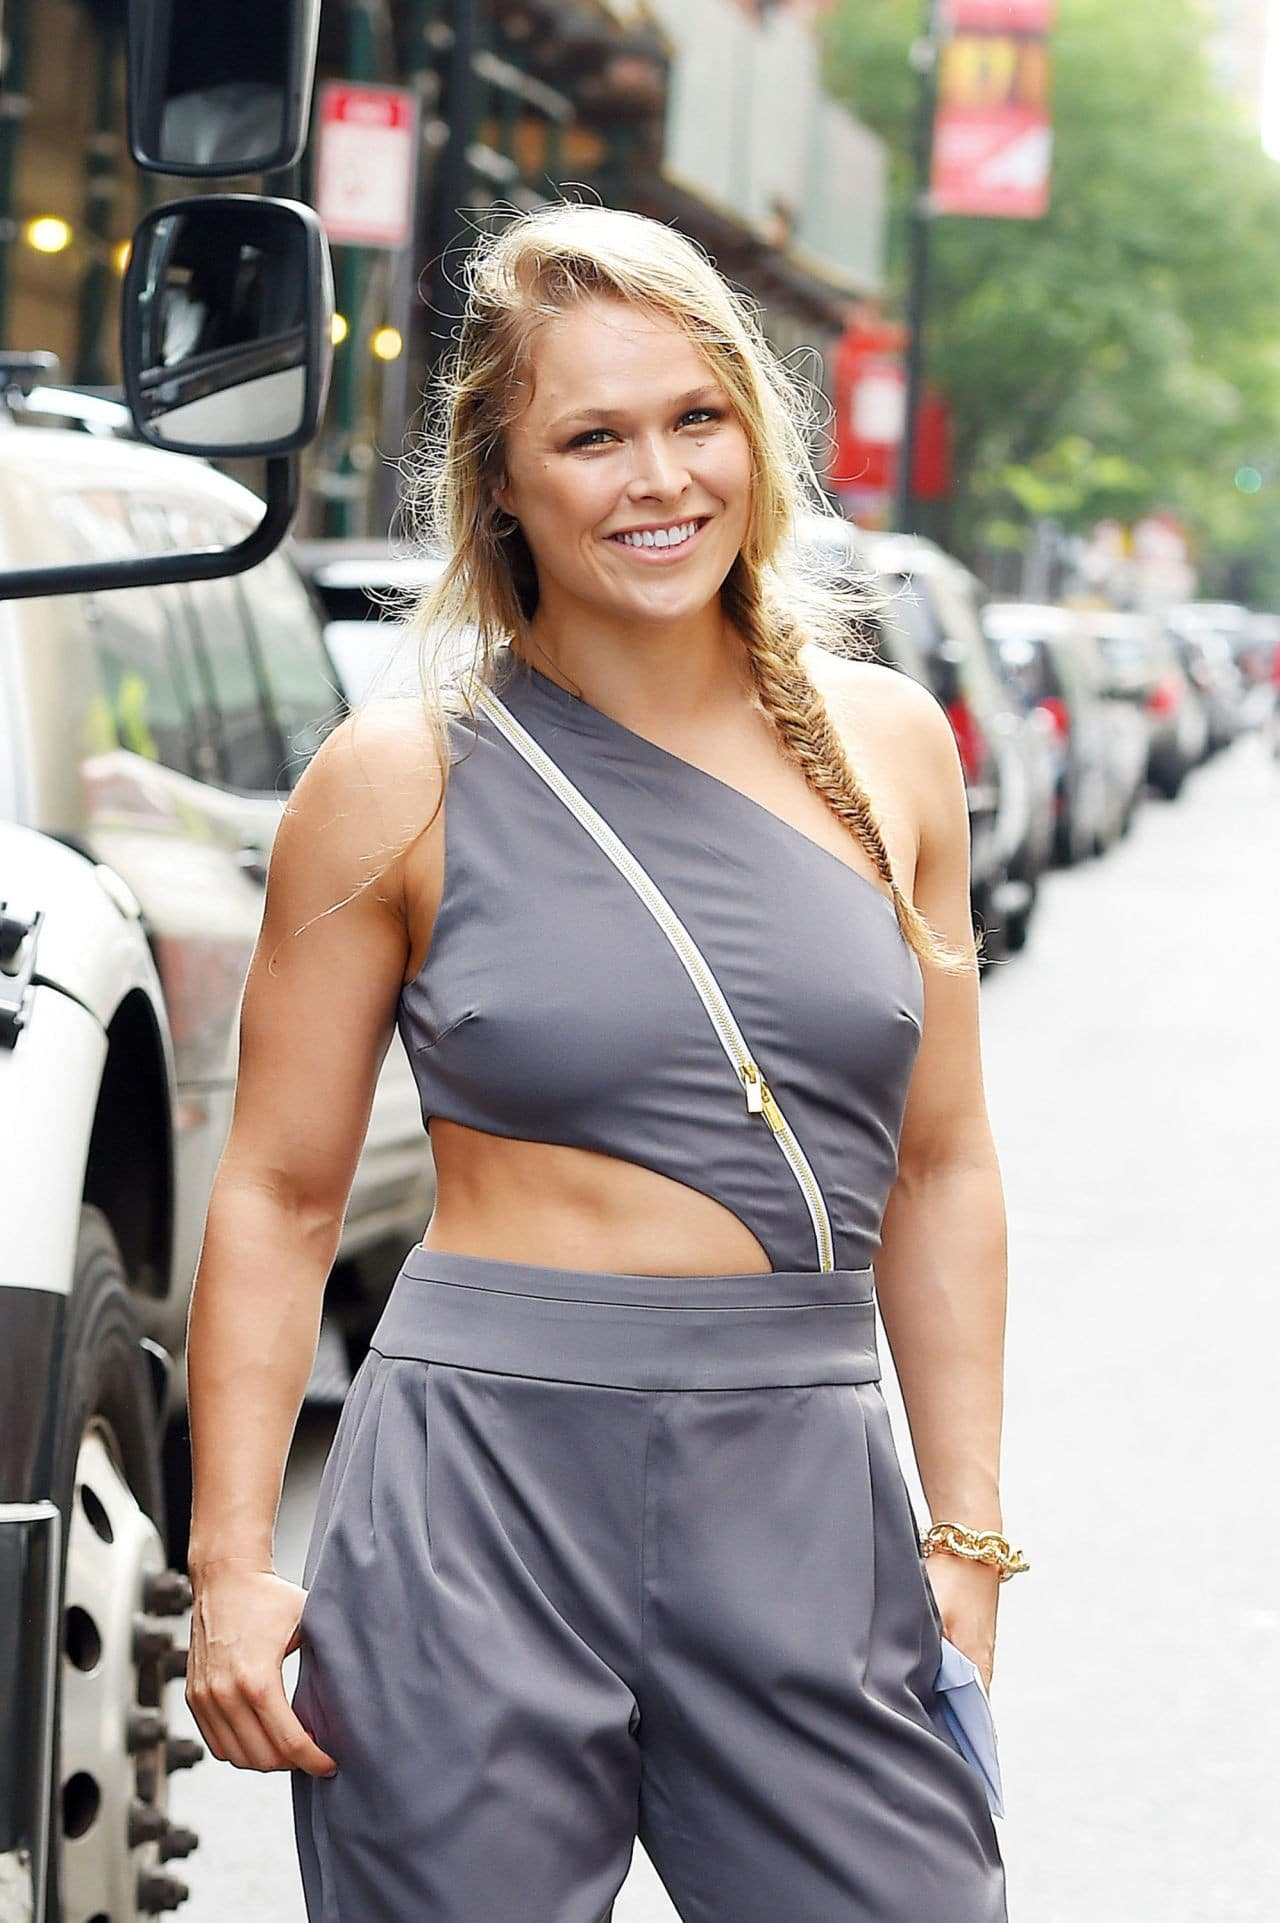 yummy   ronda rousey nude pics  uncensored